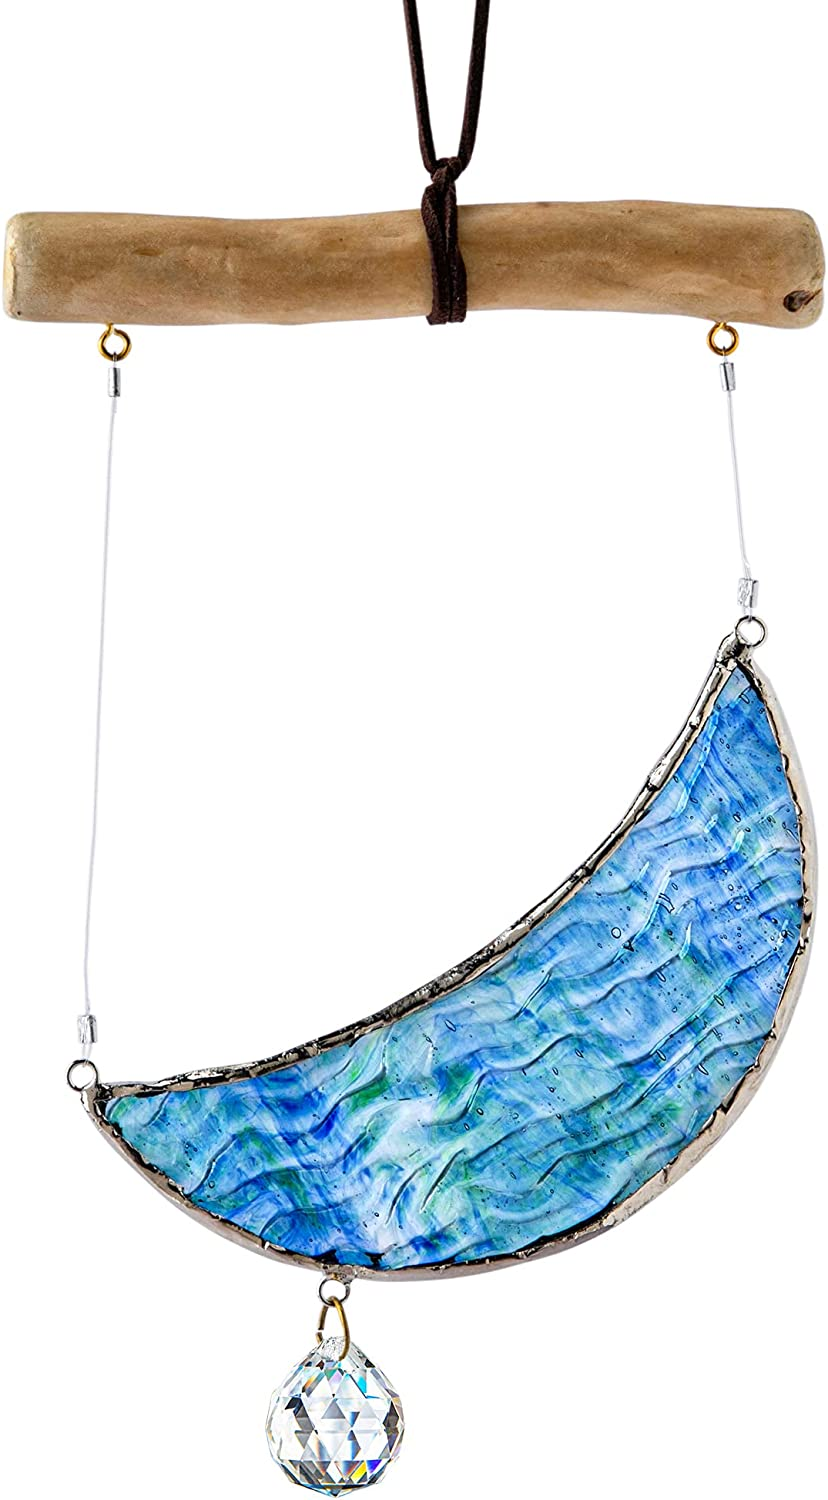 Crescent Moon Ornament Tiffany Ranking New item TOP5 Style Stained Glass Window Hangin